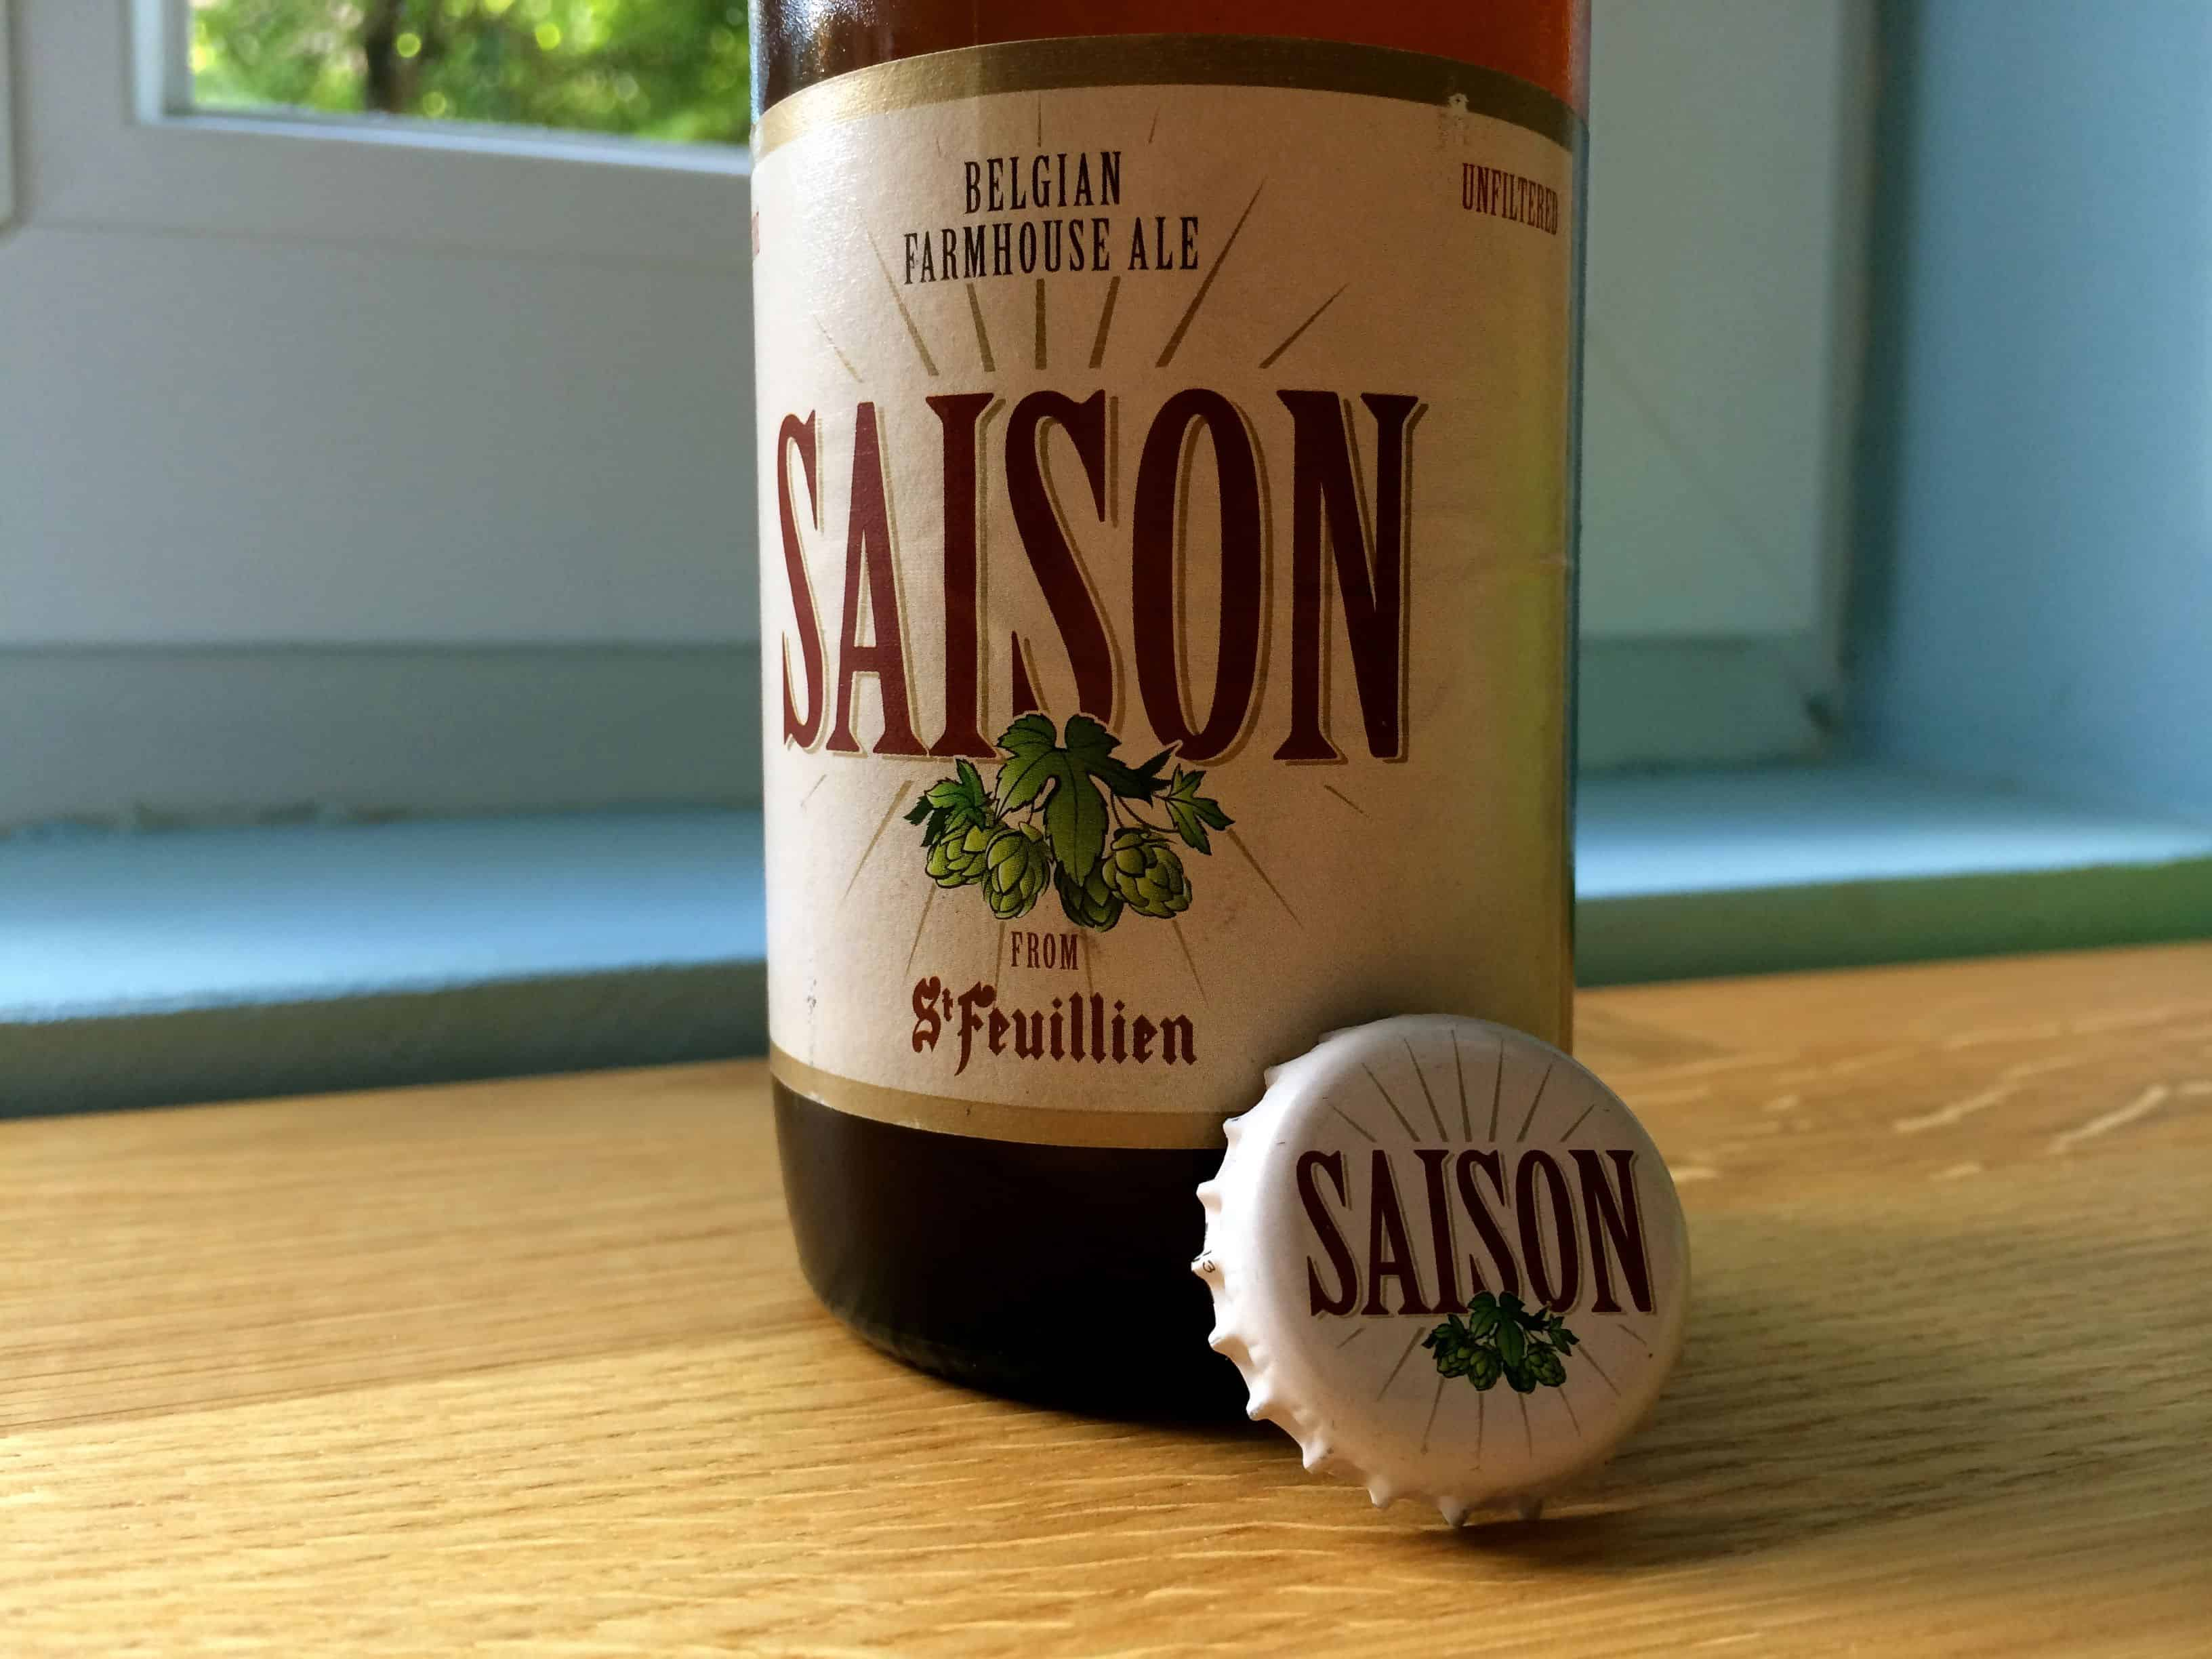 Photo of St Feuillien Saison